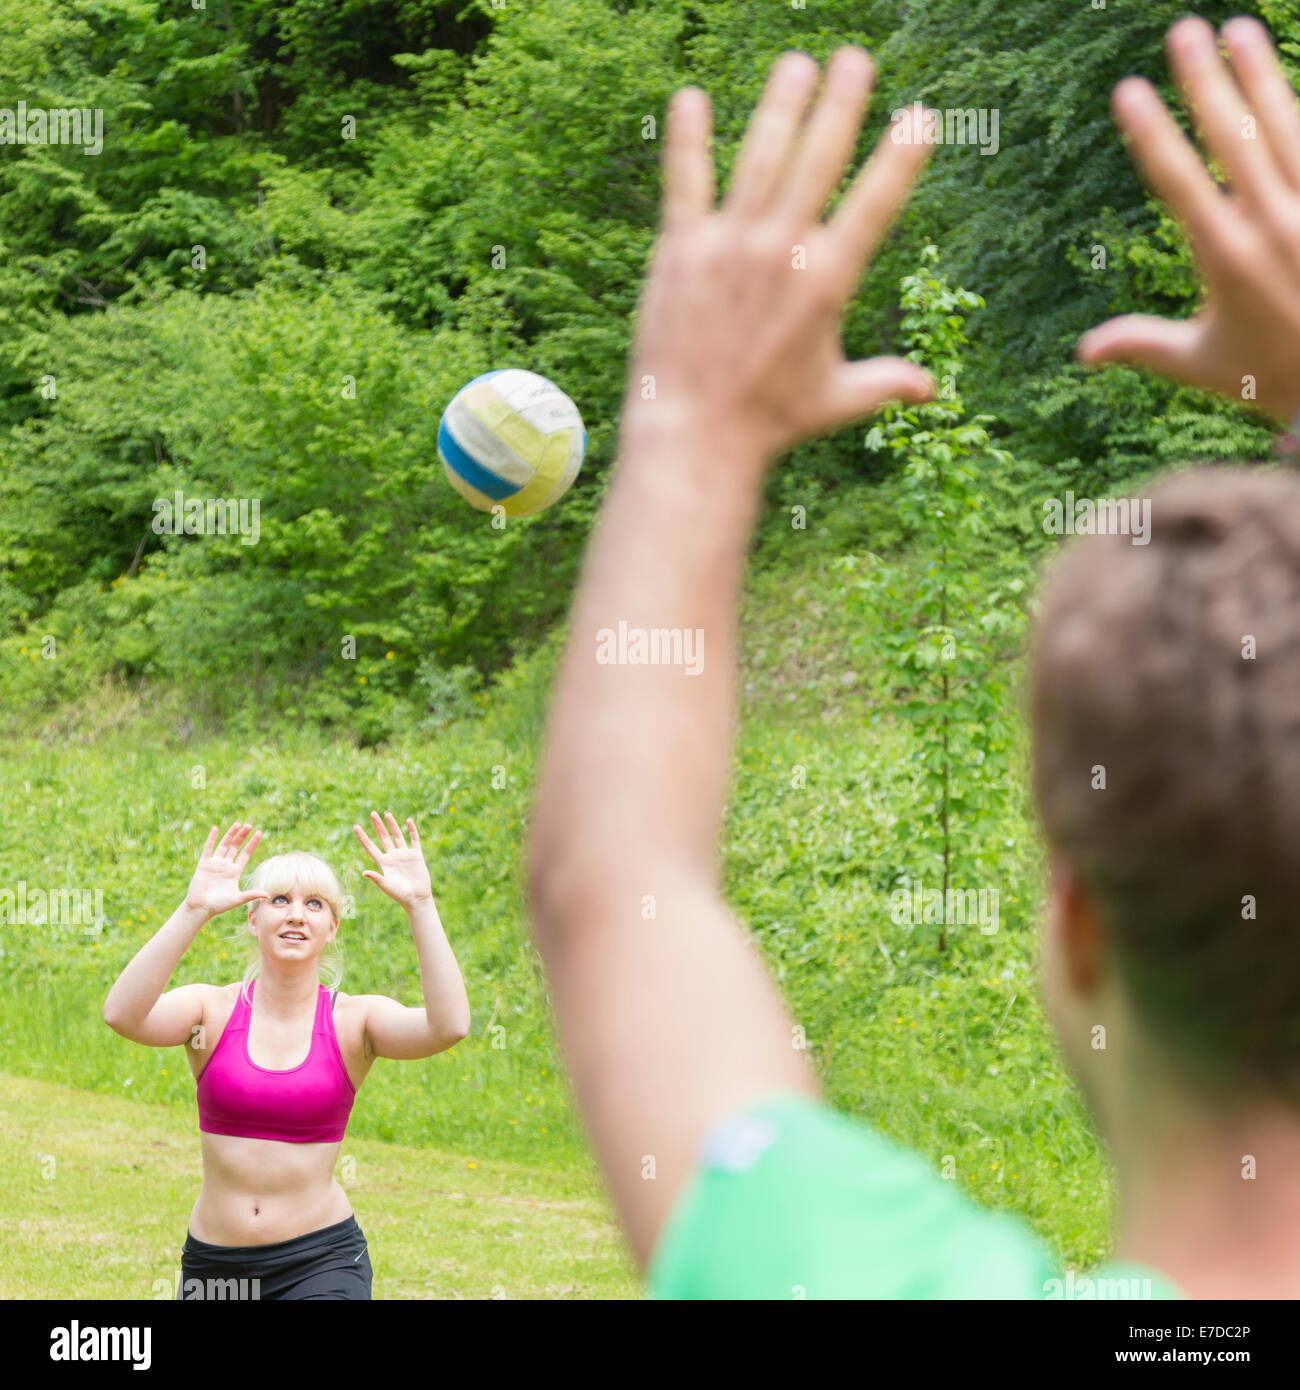 Jeune couple jouer au volley-ball dans le parc. Photo Stock